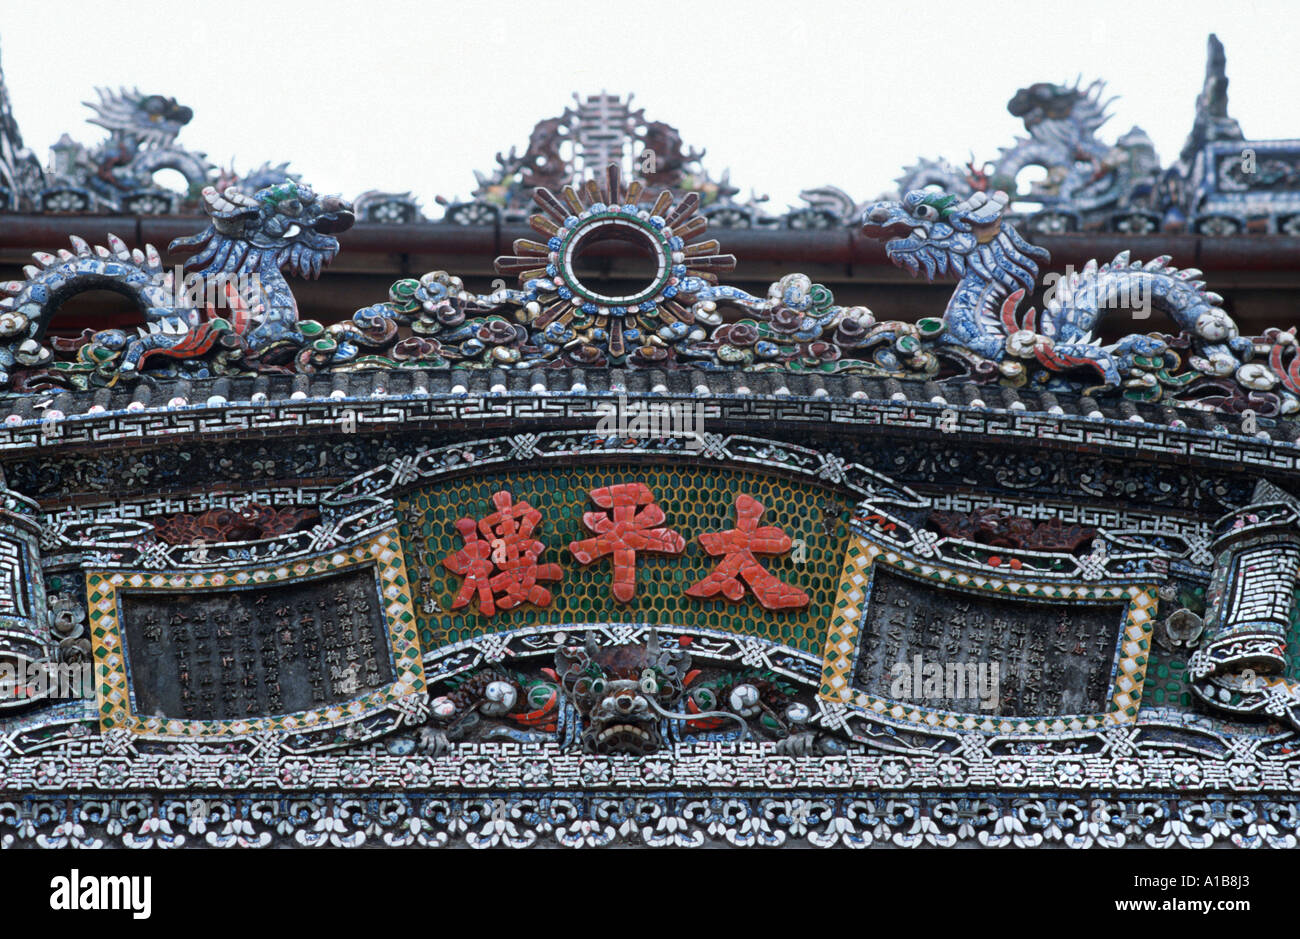 Detailo of a roof facade decorated with mosaic with dragons on top Imperial City Hue Vietnam - Stock Image